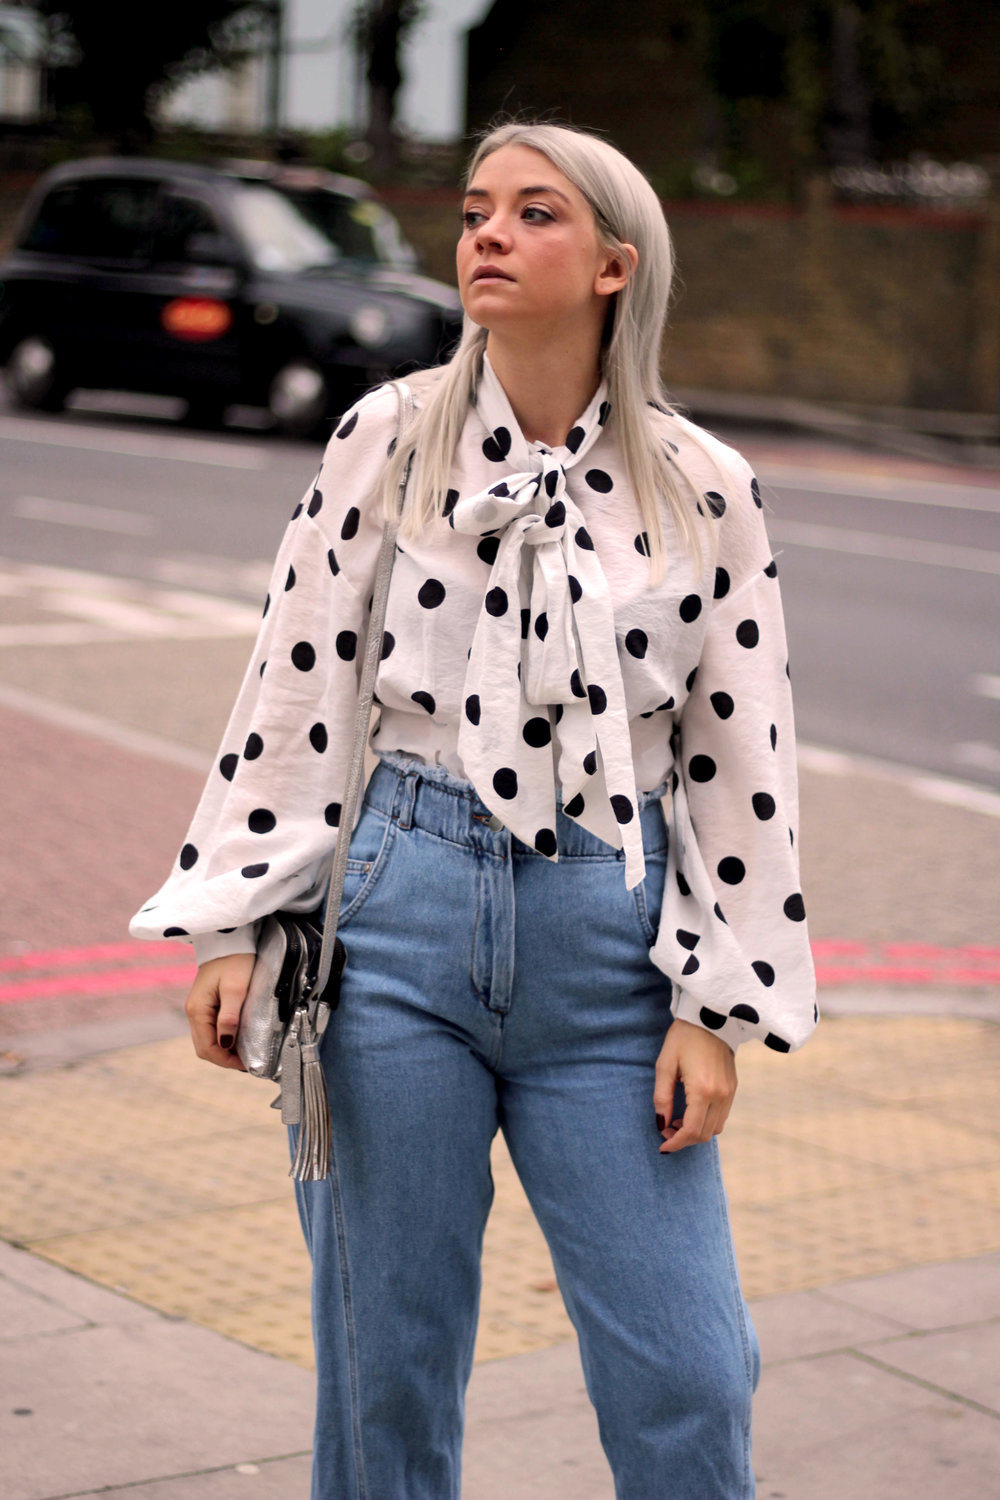 PUSSY BOW POLKA DOT BLOUSE, WIDE LEG FRAYED TOPSHOP JEANS, BLACK ANKLE BOOTS, NORTHERN MAGPIE, JOEY TAYLOR 1